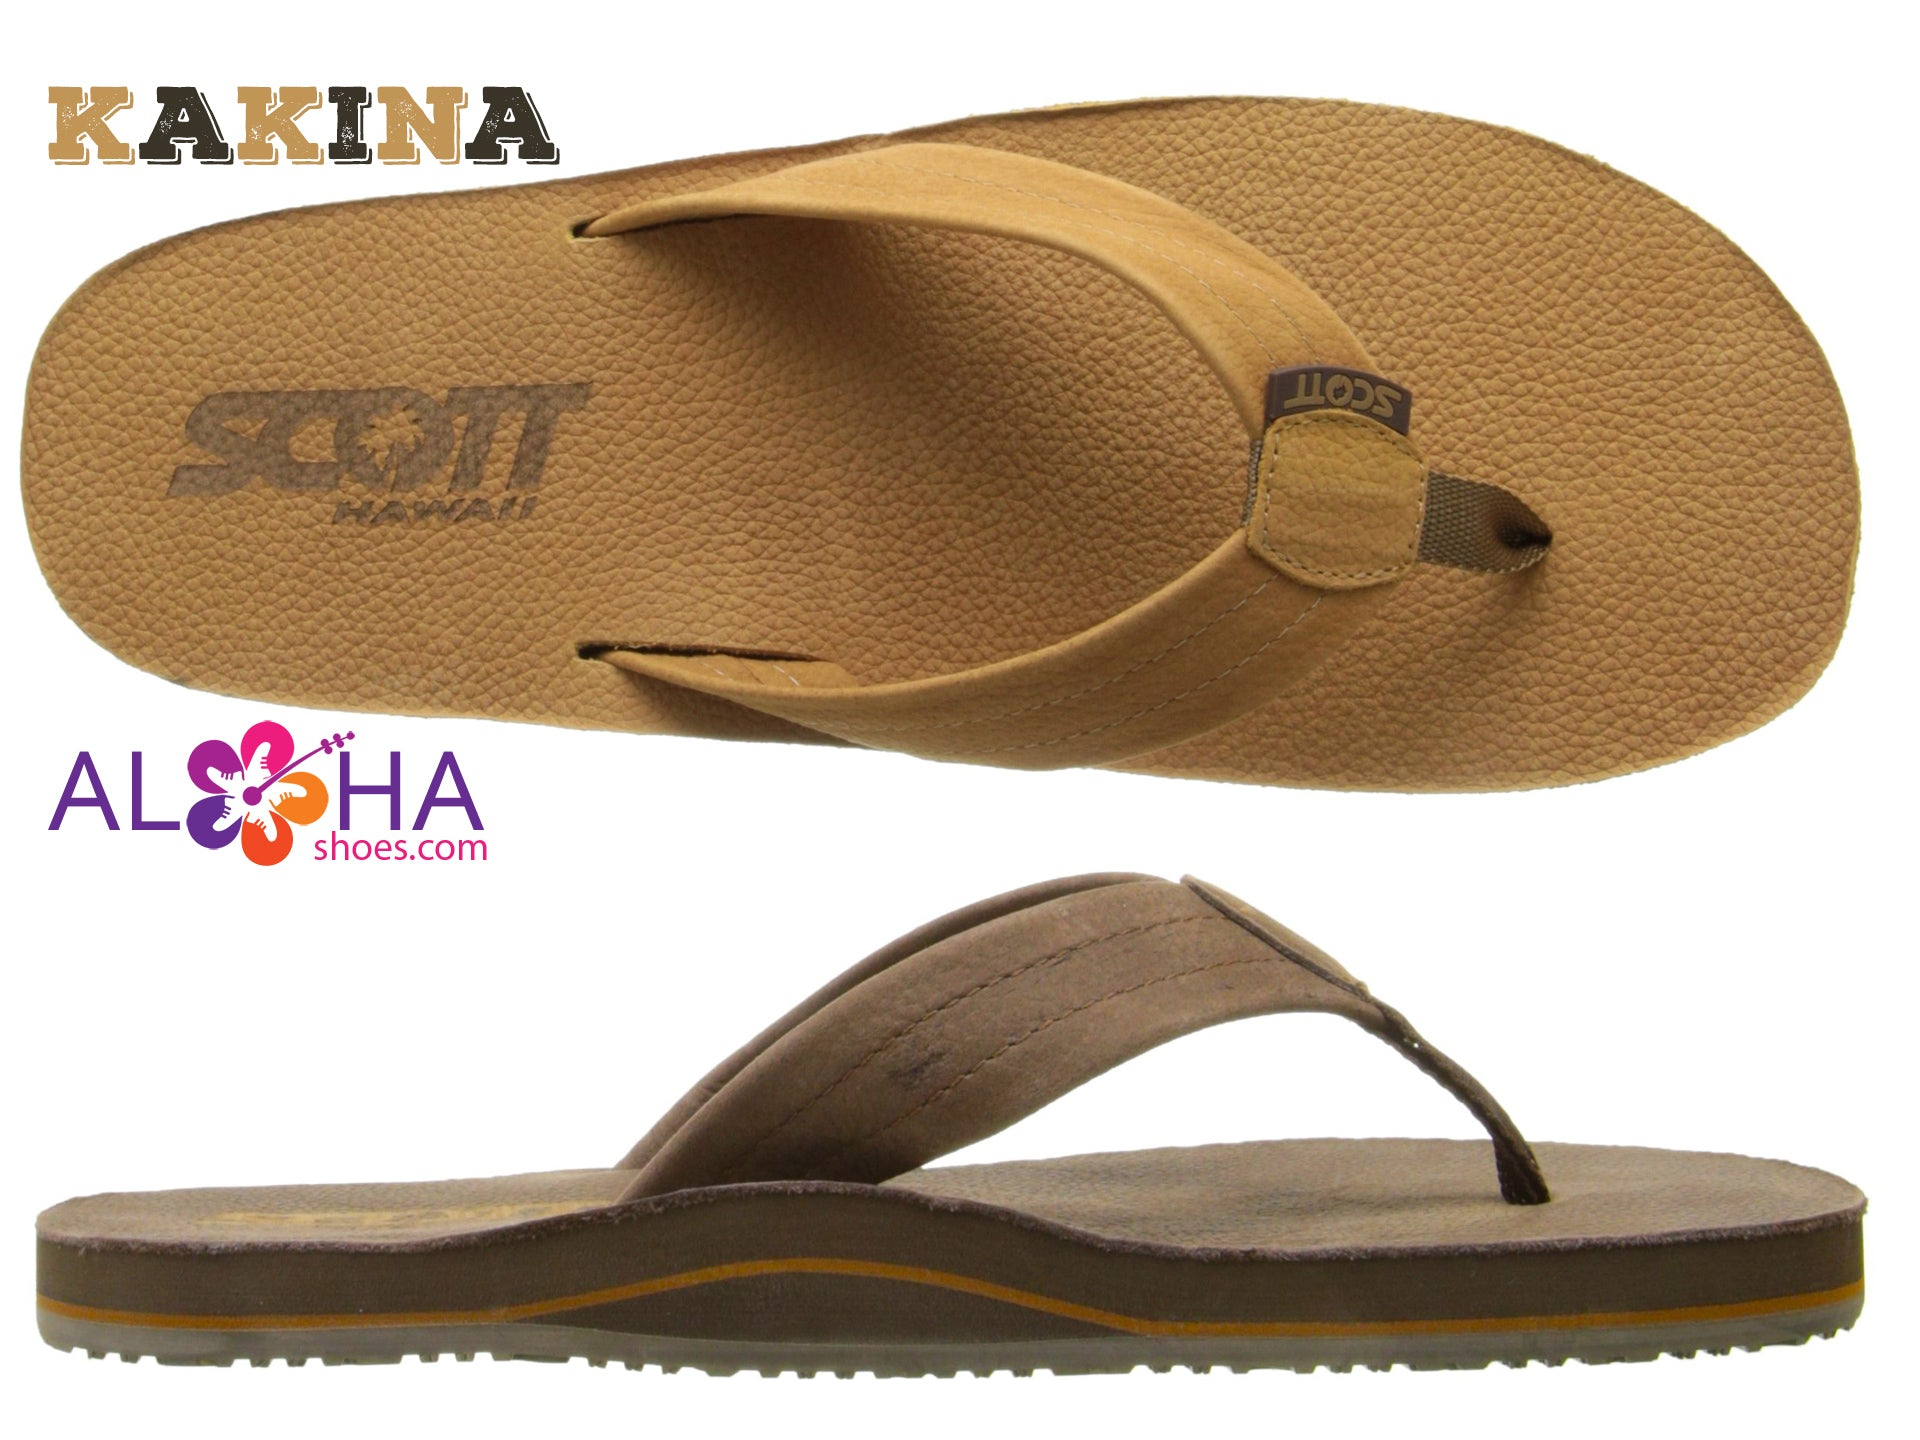 Scott Kakina Premier Leather Vintage Sandals |  Layered Arched Support - AlohaShoes.com